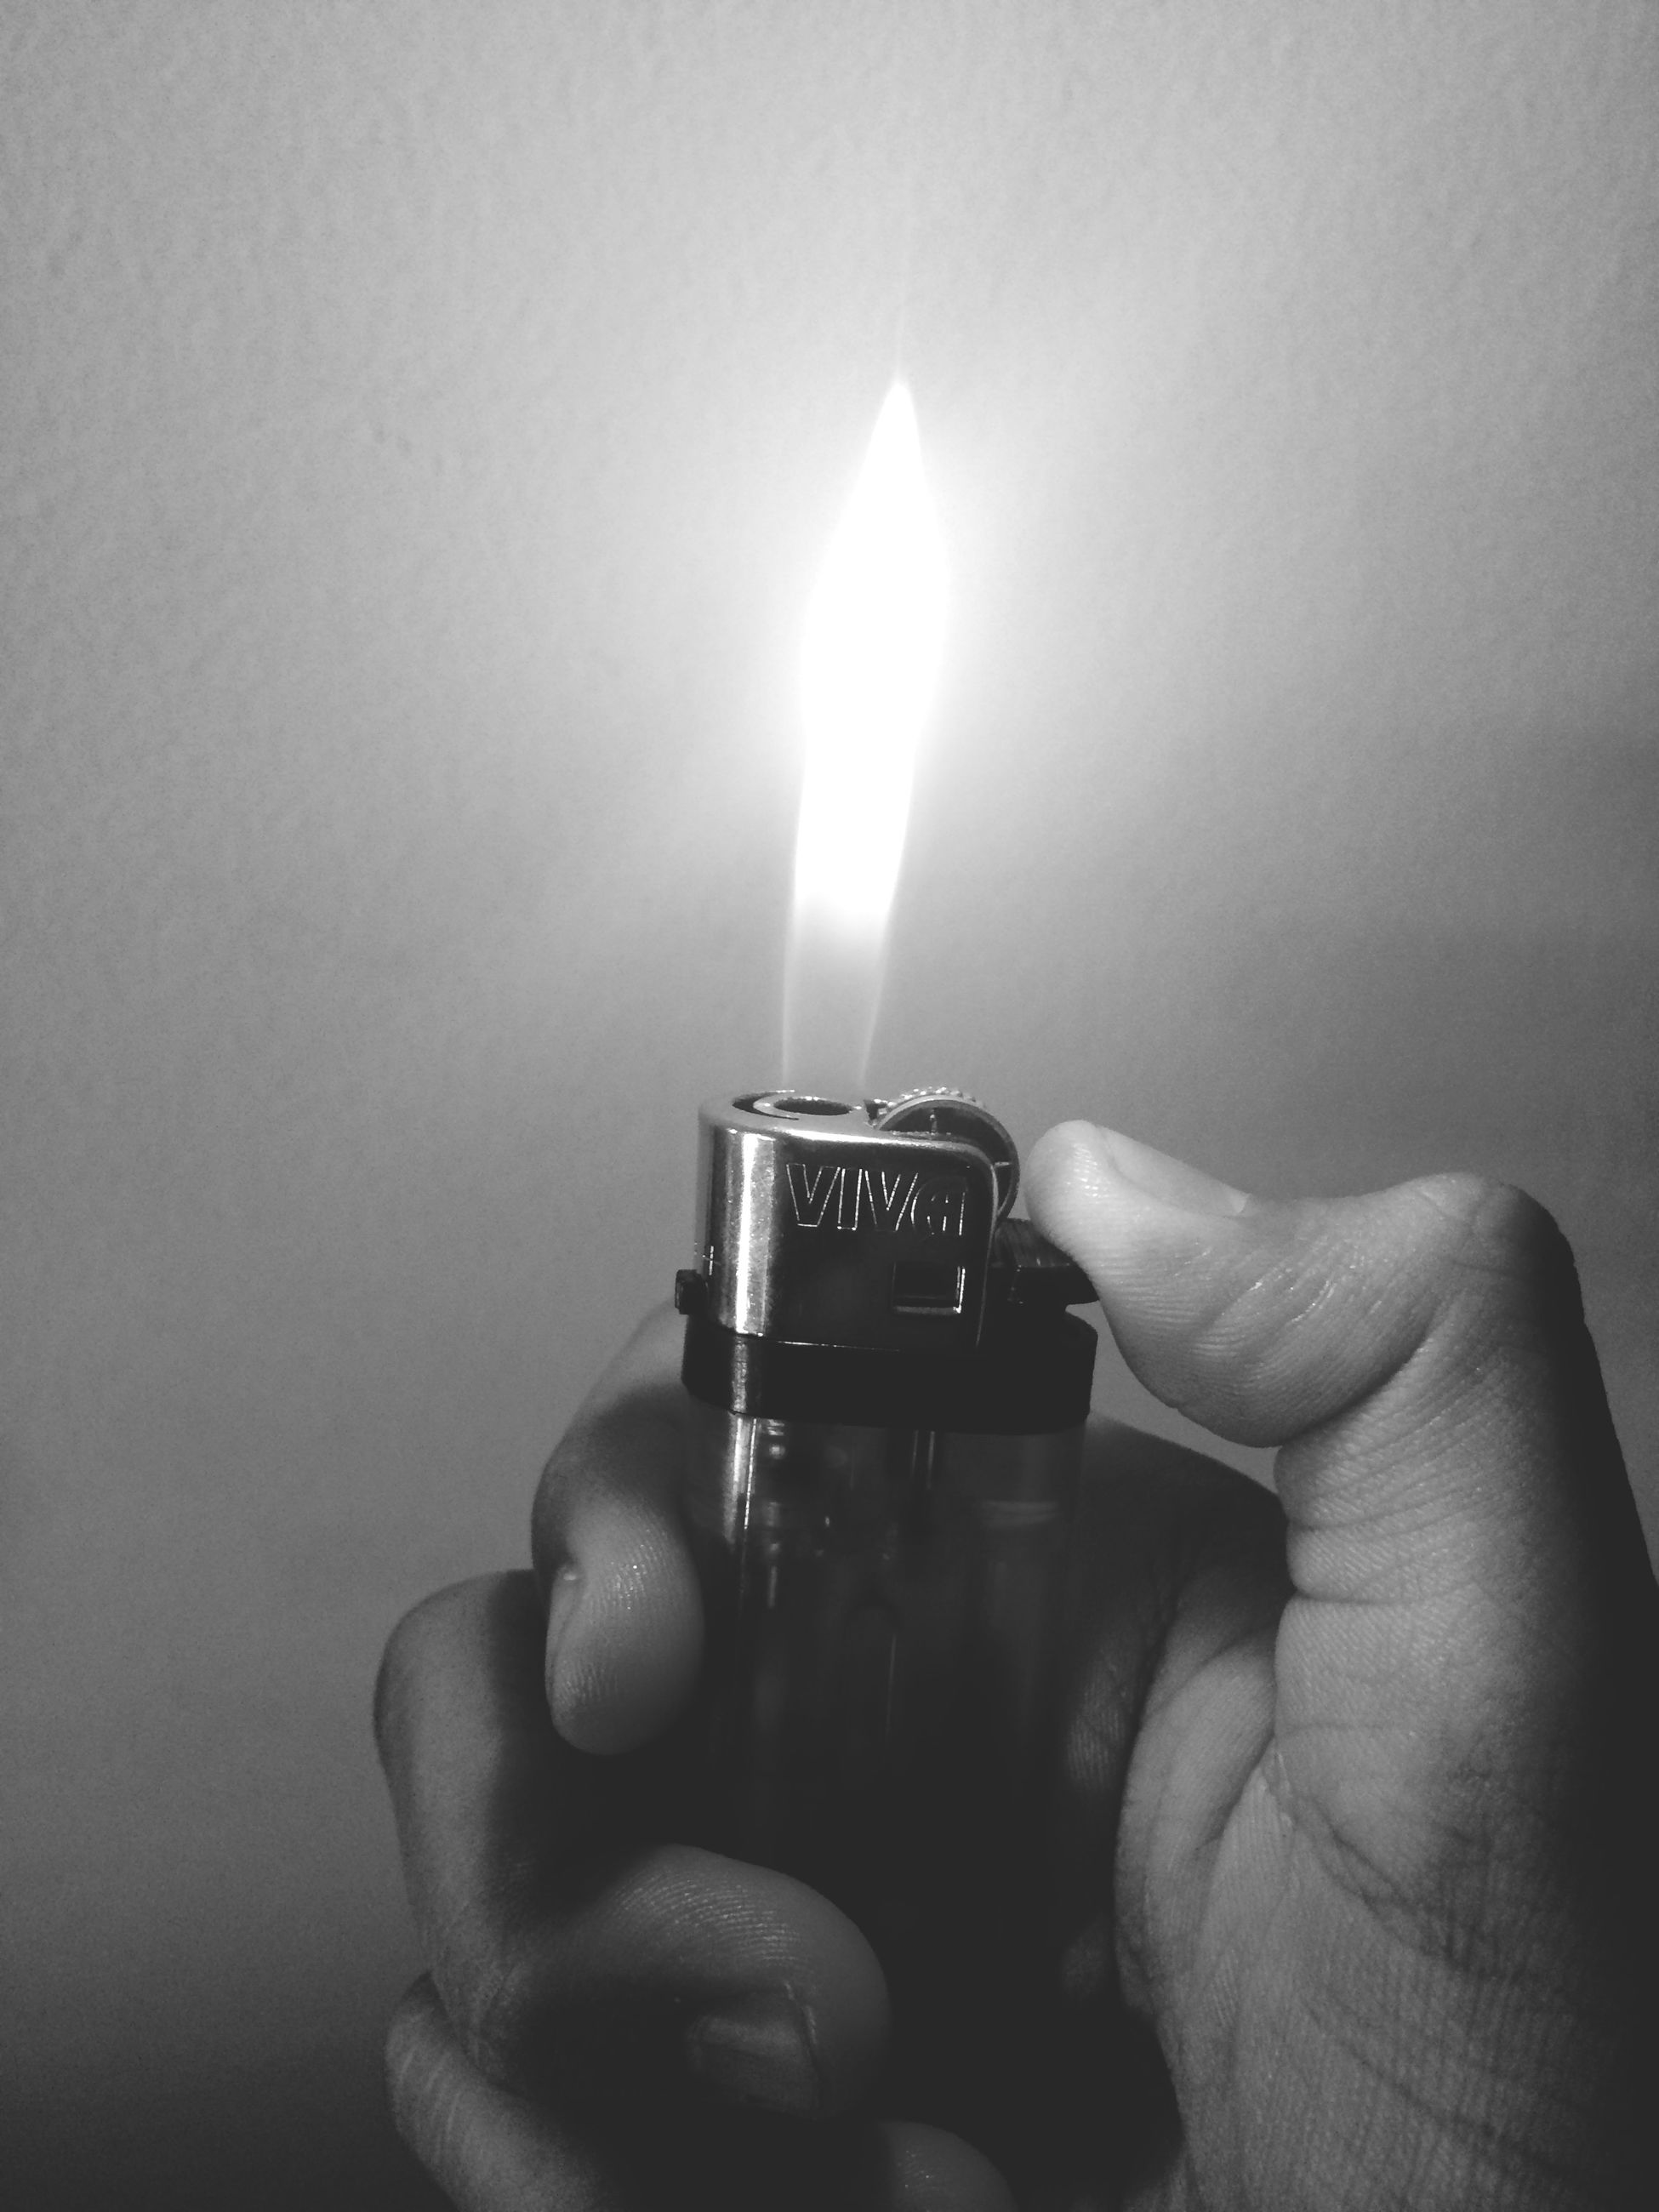 person, holding, indoors, part of, flame, burning, human finger, cropped, heat - temperature, fire - natural phenomenon, close-up, candle, unrecognizable person, glowing, illuminated, men, lifestyles